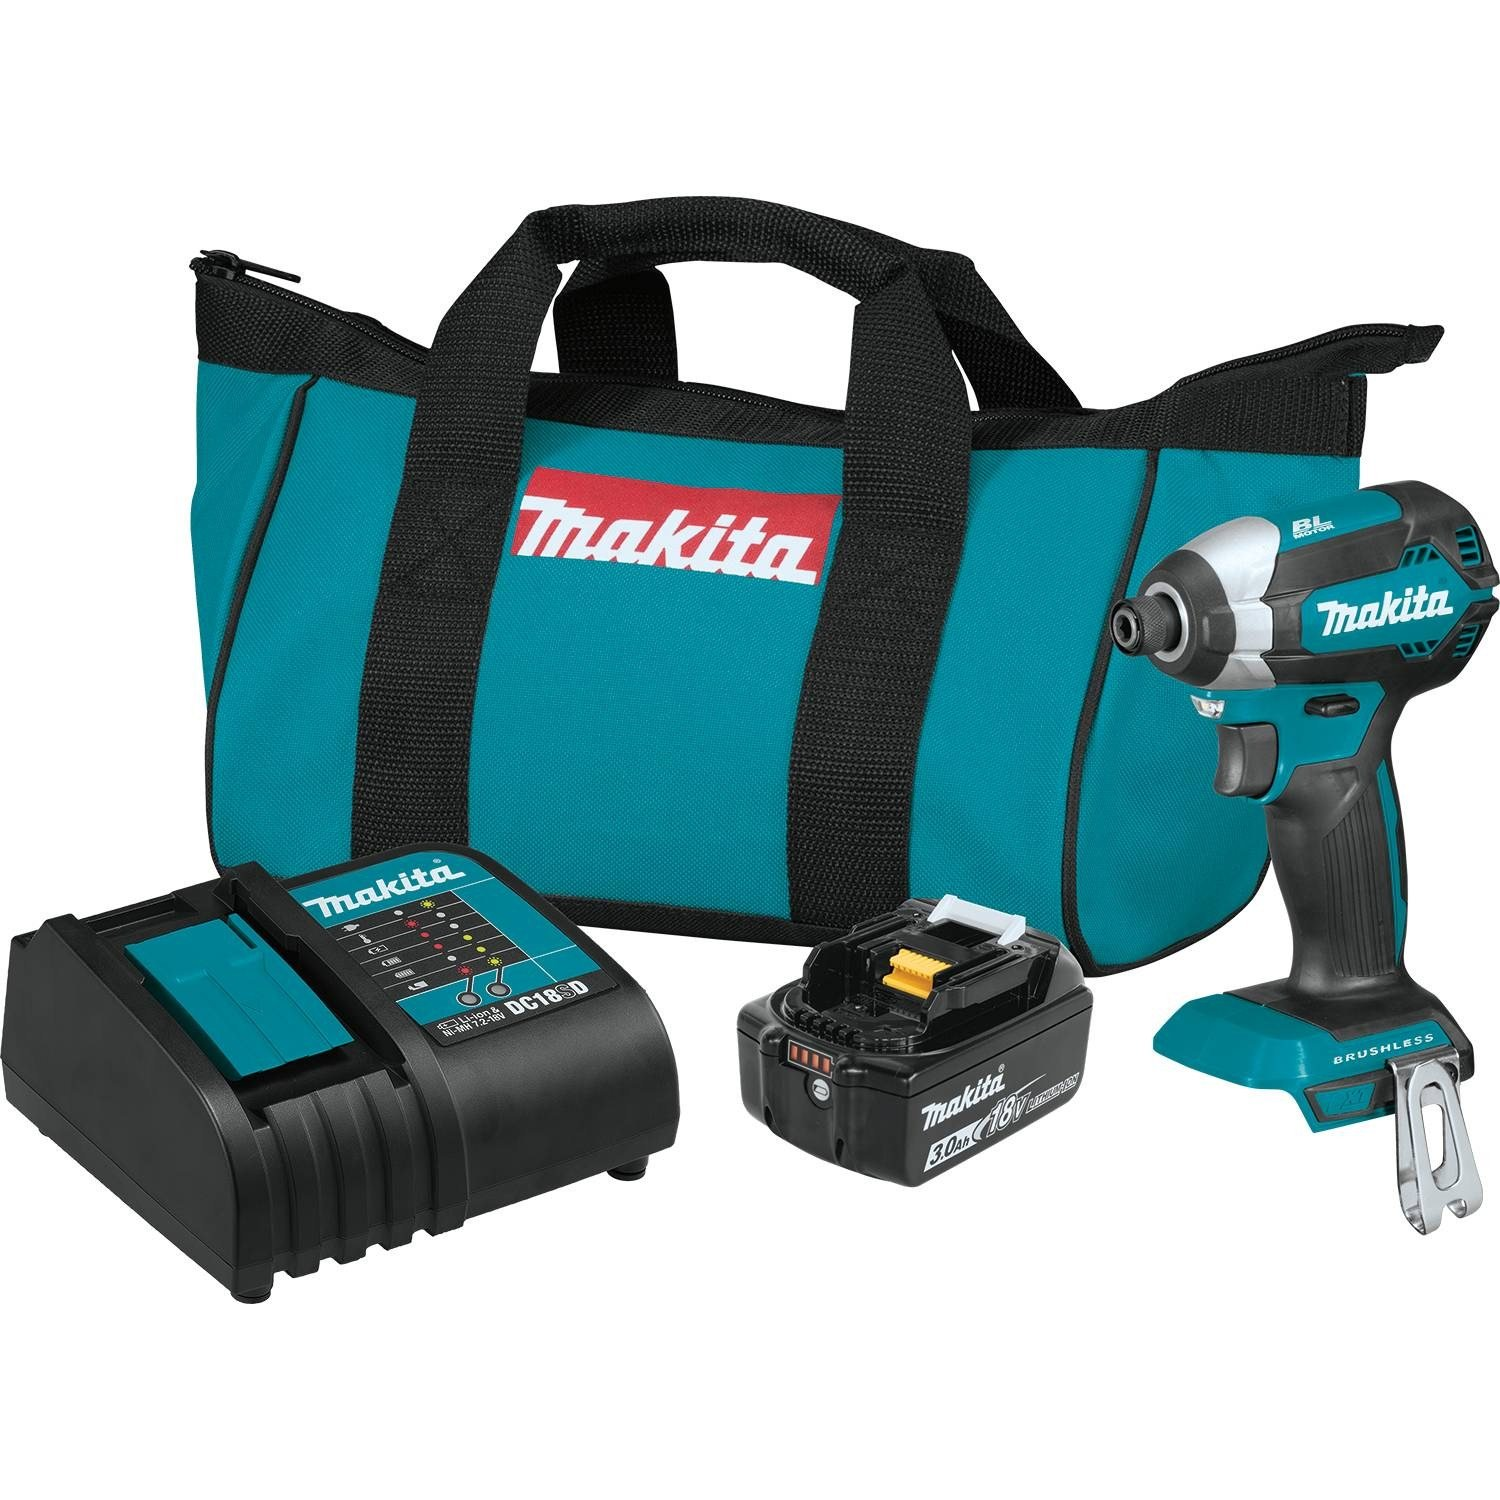 Makita XDT131 18V LXT Lithium-Ion Brushless Cordless Impact Driver Kit  (3.0Ah) - - Amazon.com cd609f88bdfd1